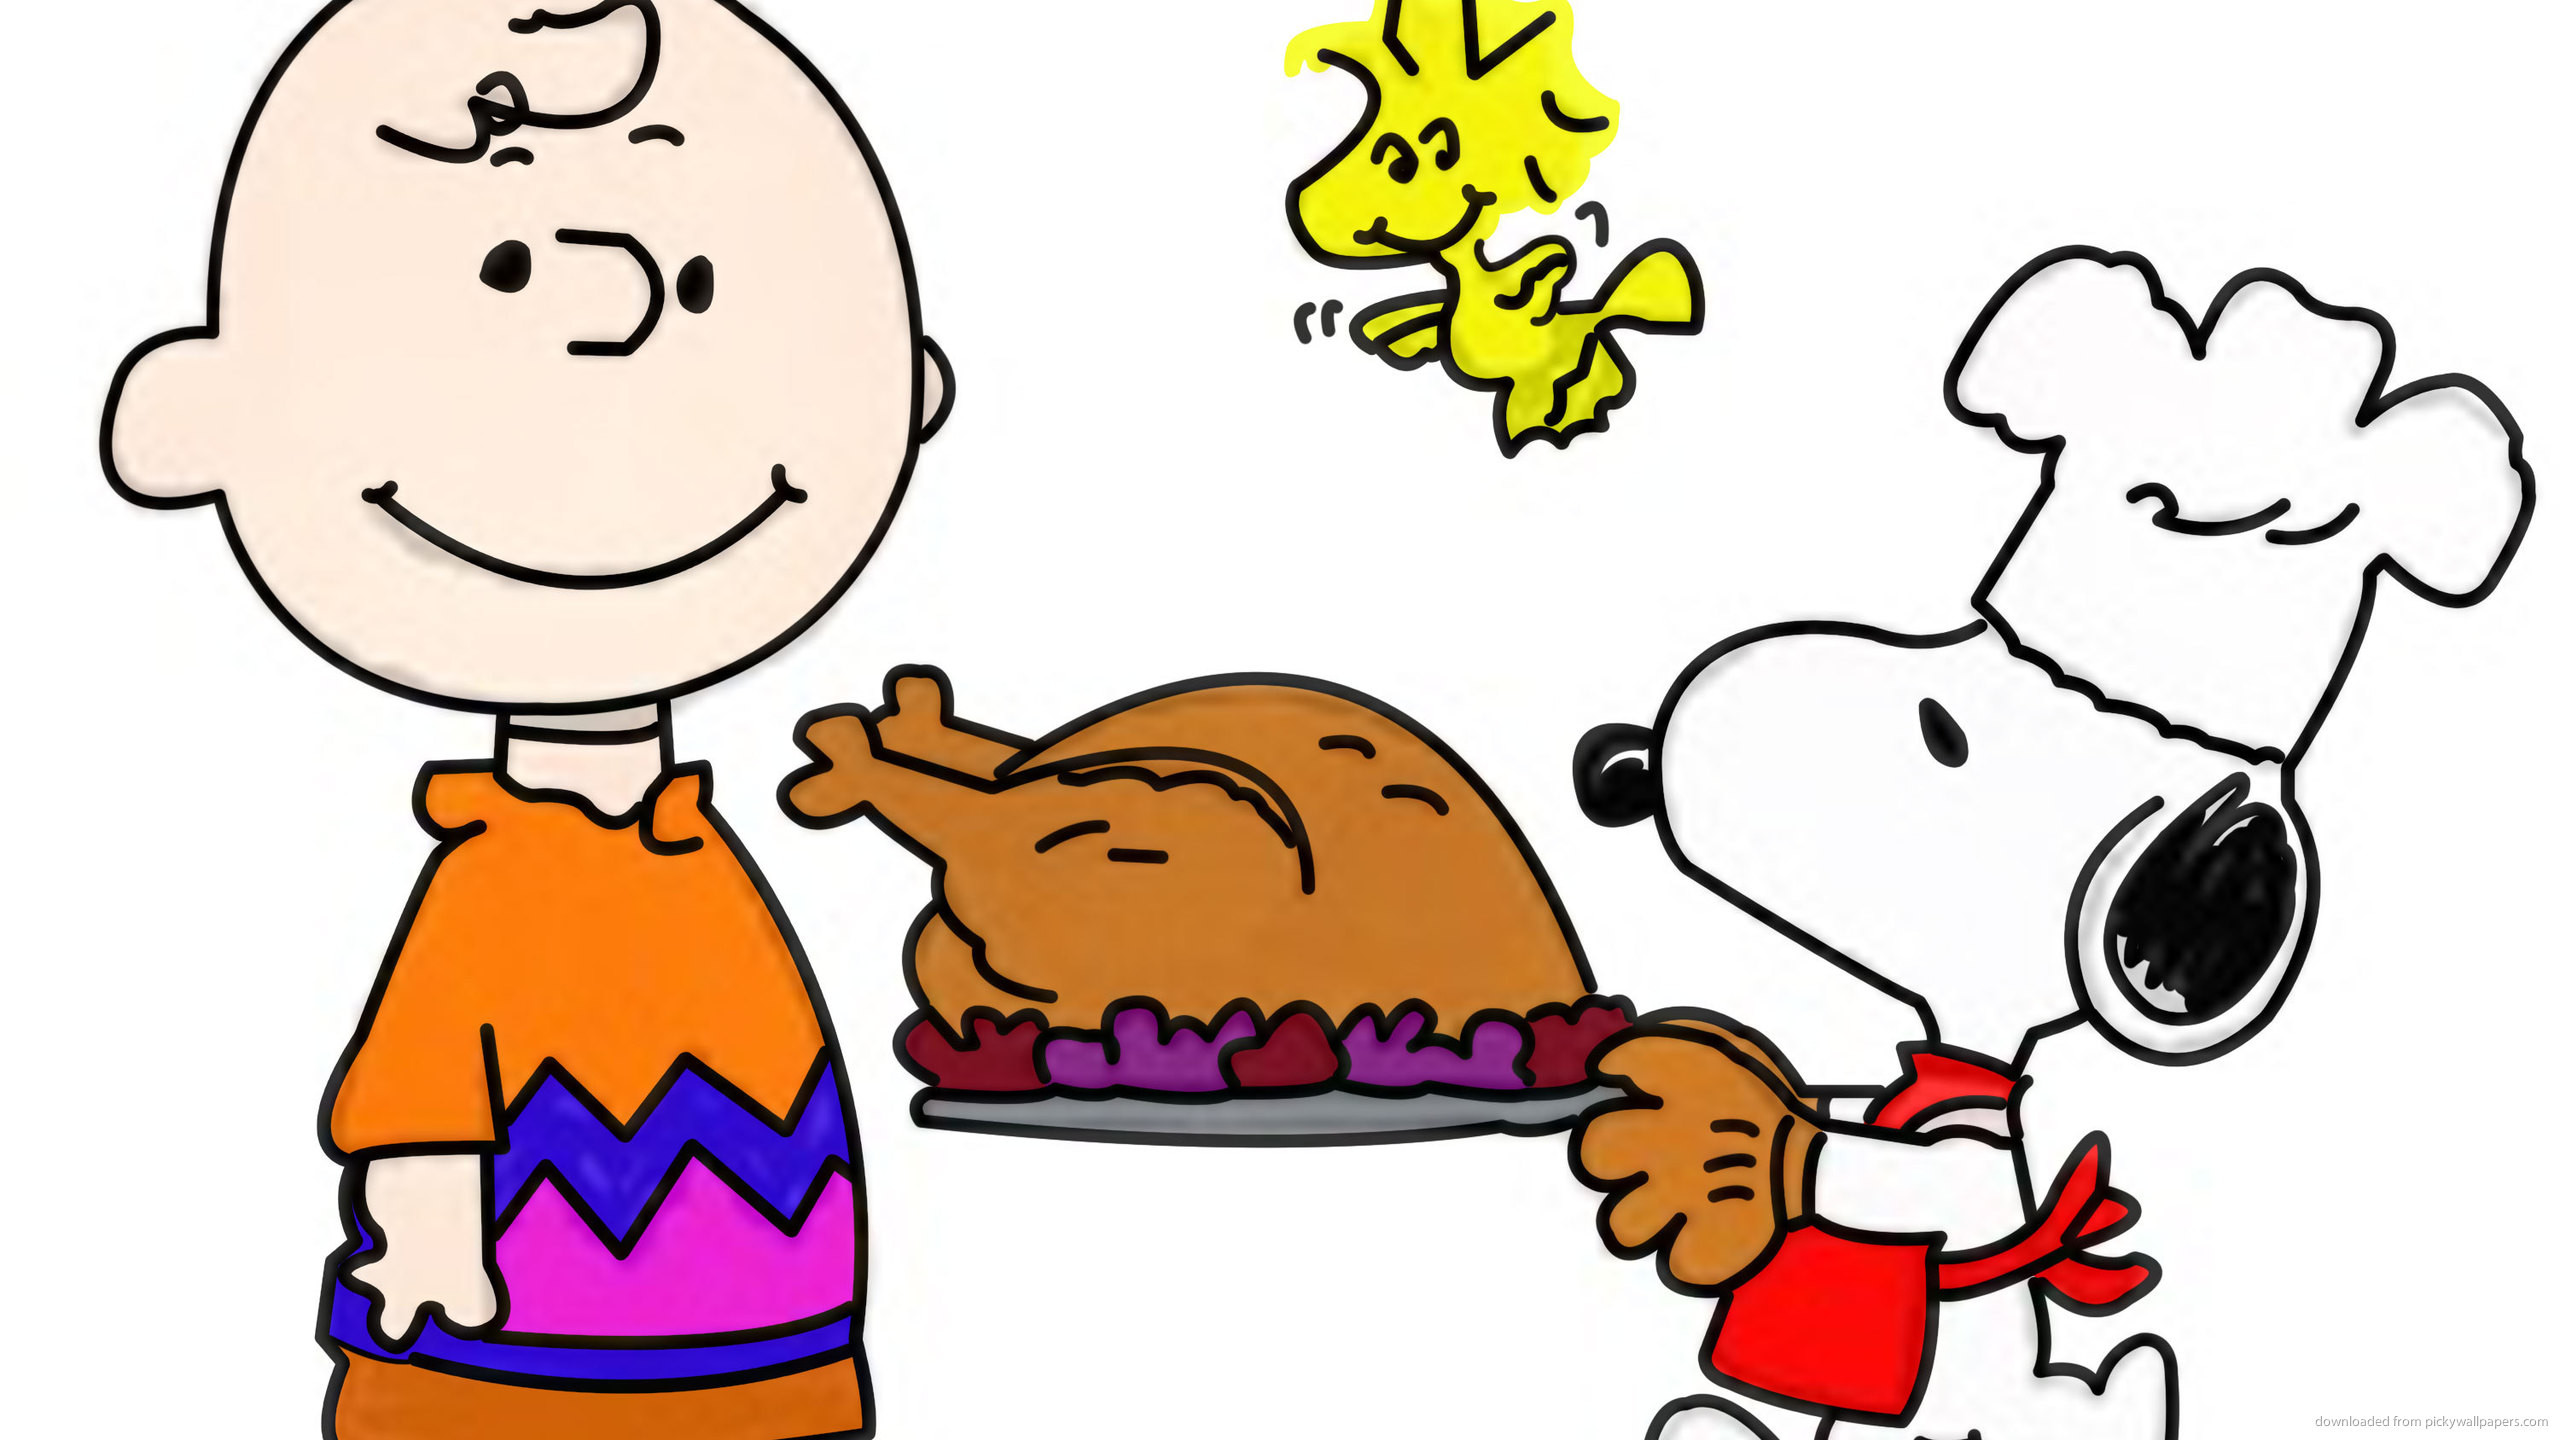 Res: 2560x1440, Snoopy Thanksgiving wallpaper